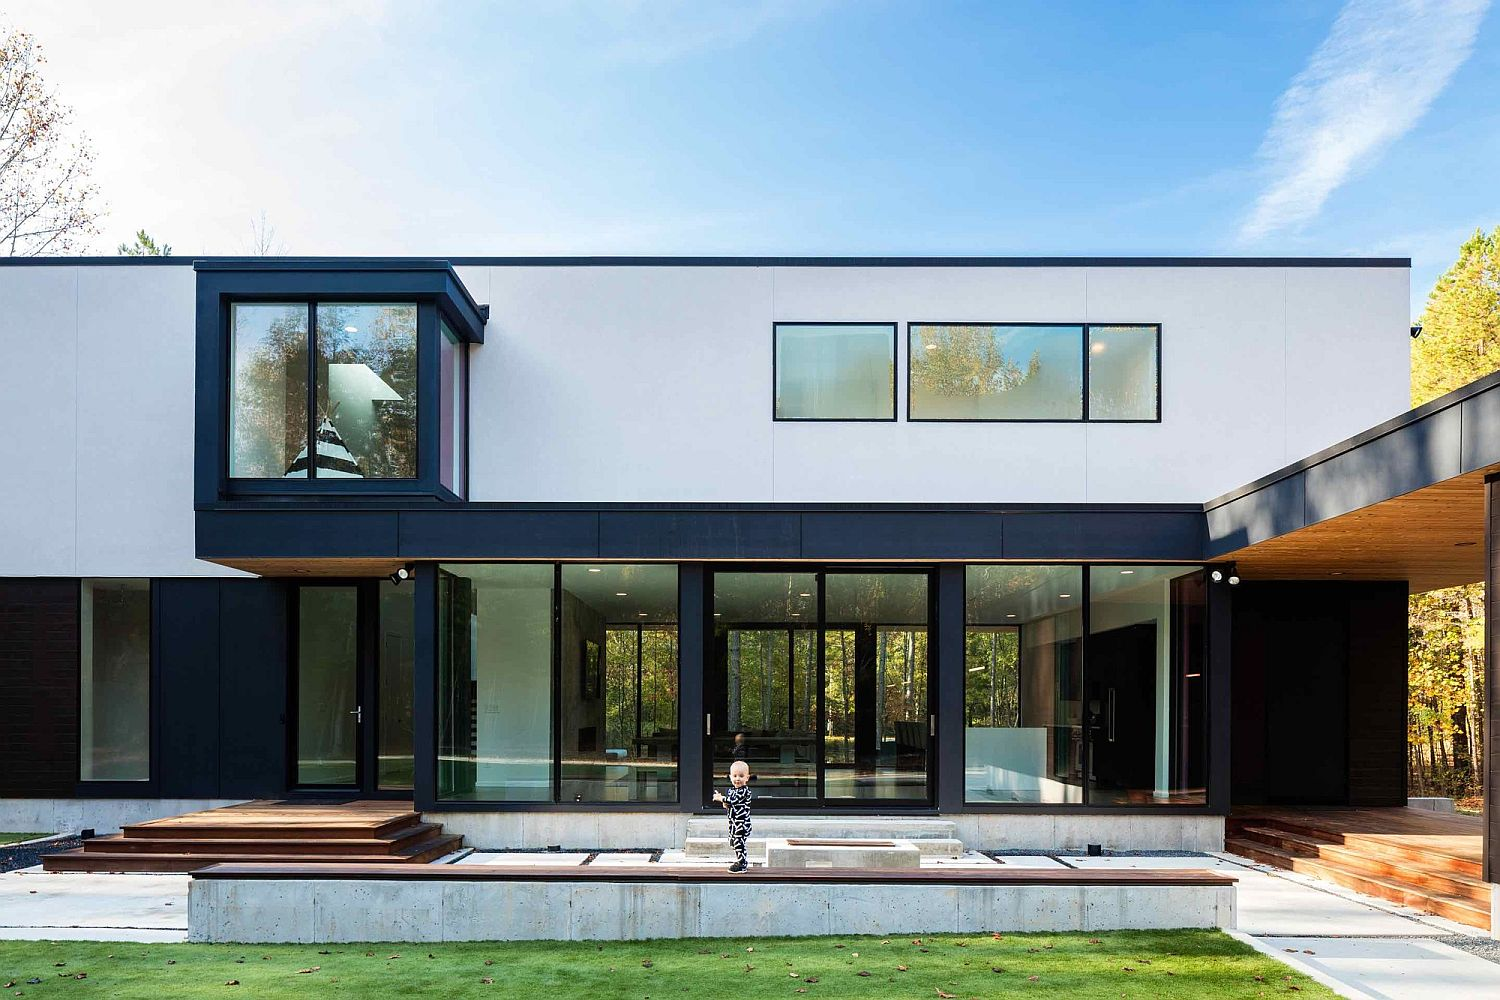 Dark-window-and-door-frames-help-anchor-the-white-contemporary-home